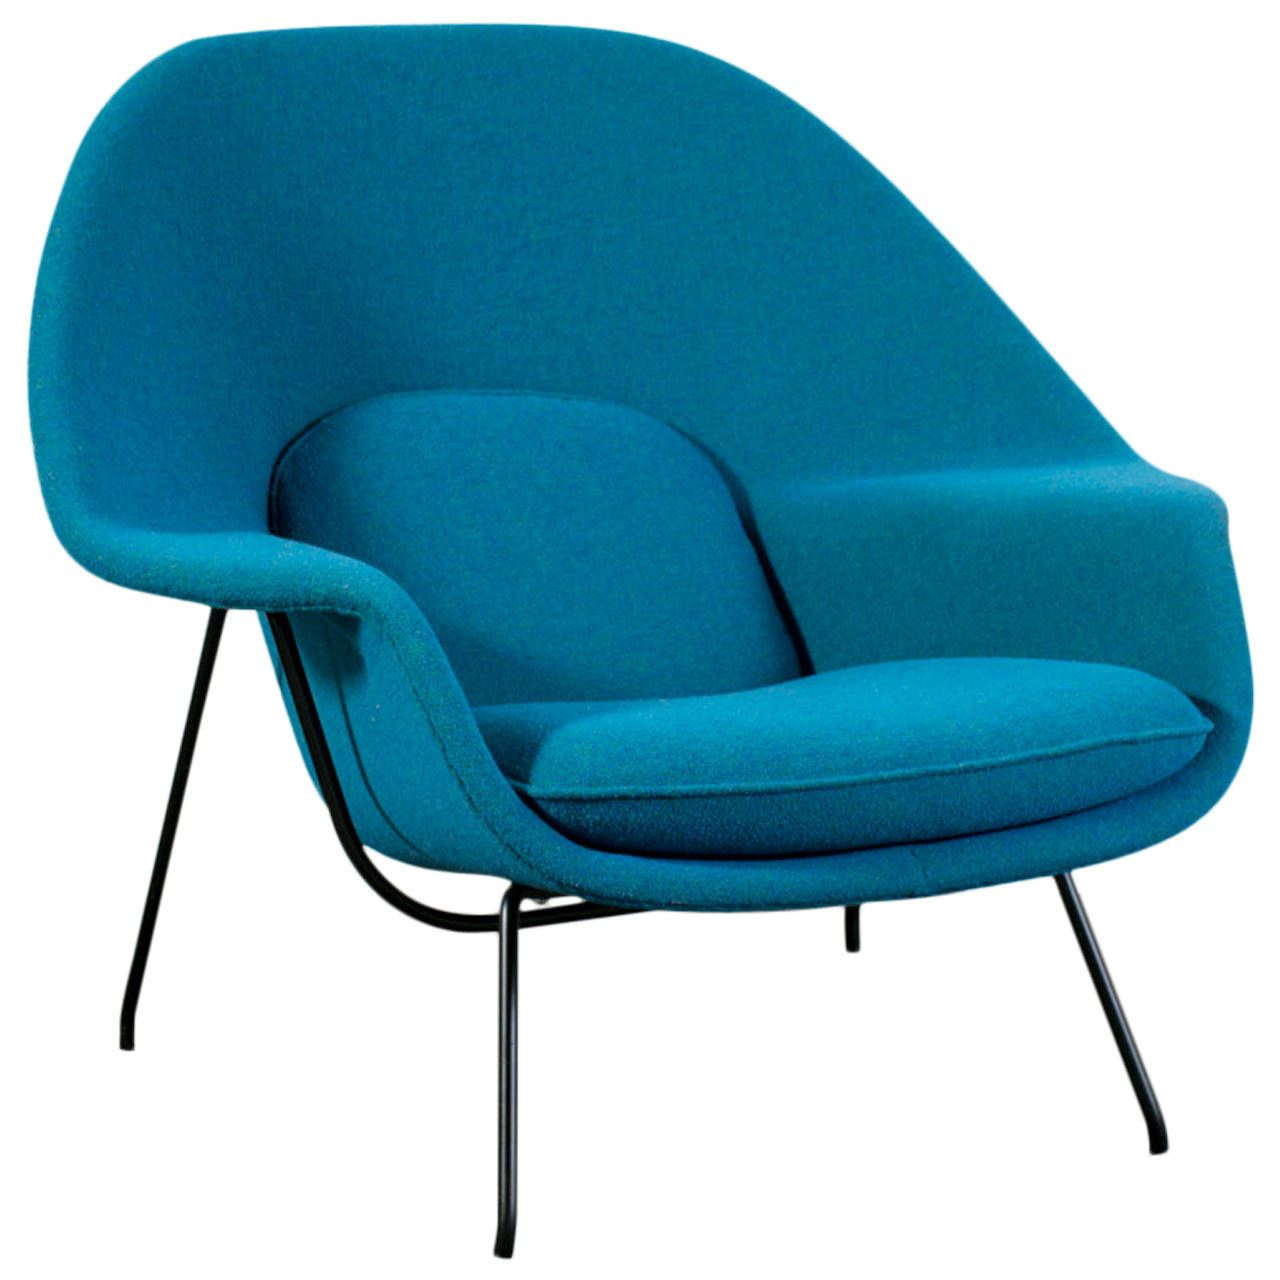 Vintage Womb Chair by Eero Saarinen for Knoll Womb chair and